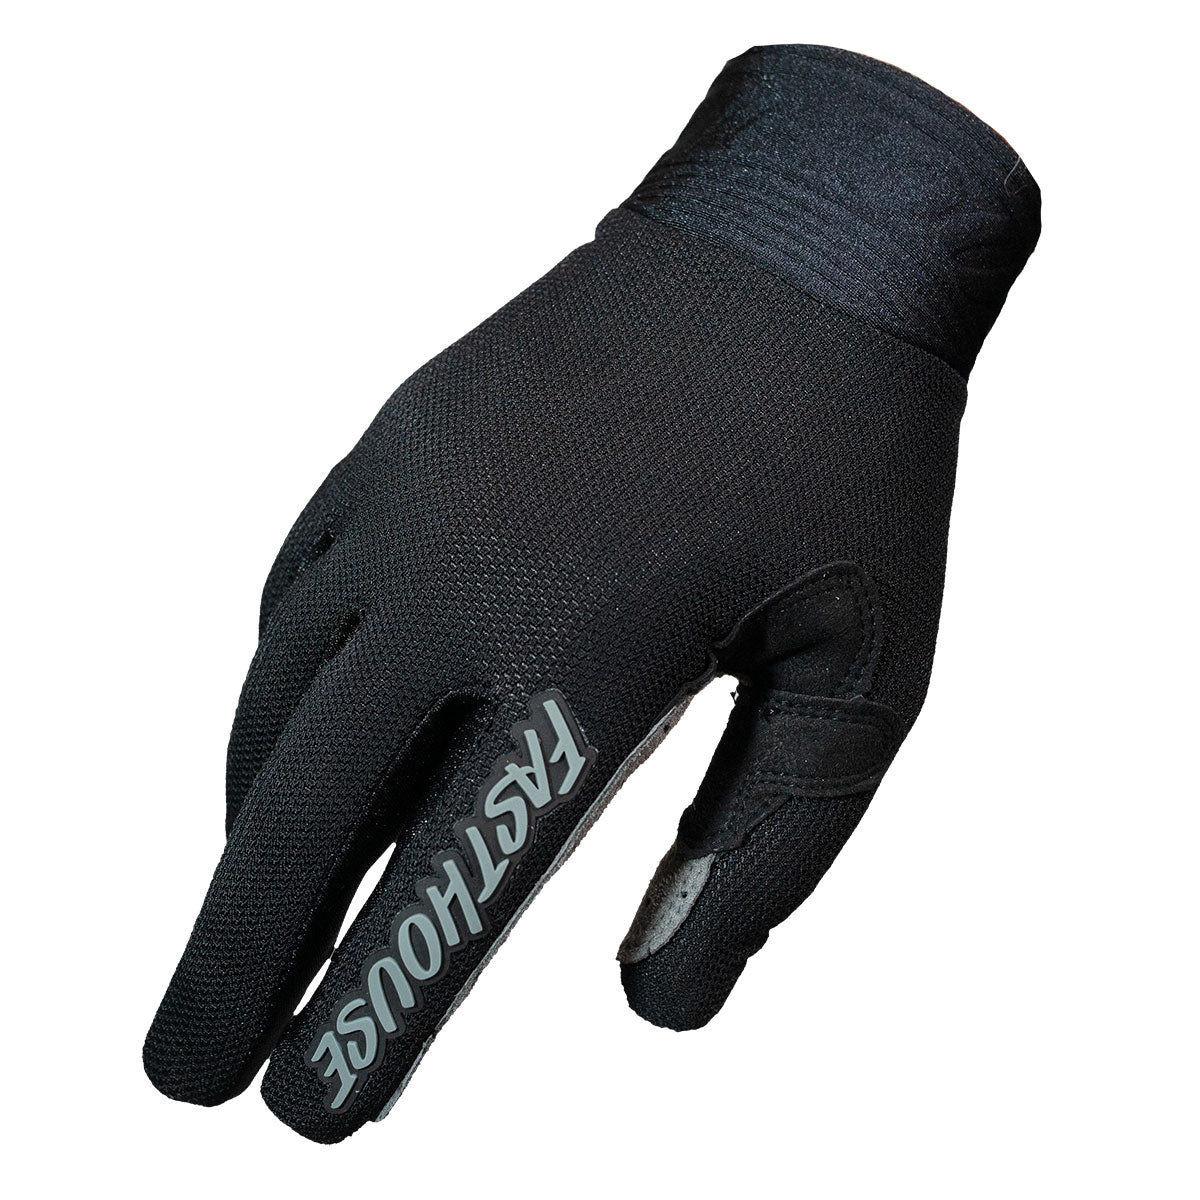 Fasthouse Blitz Glove - Black/Grey